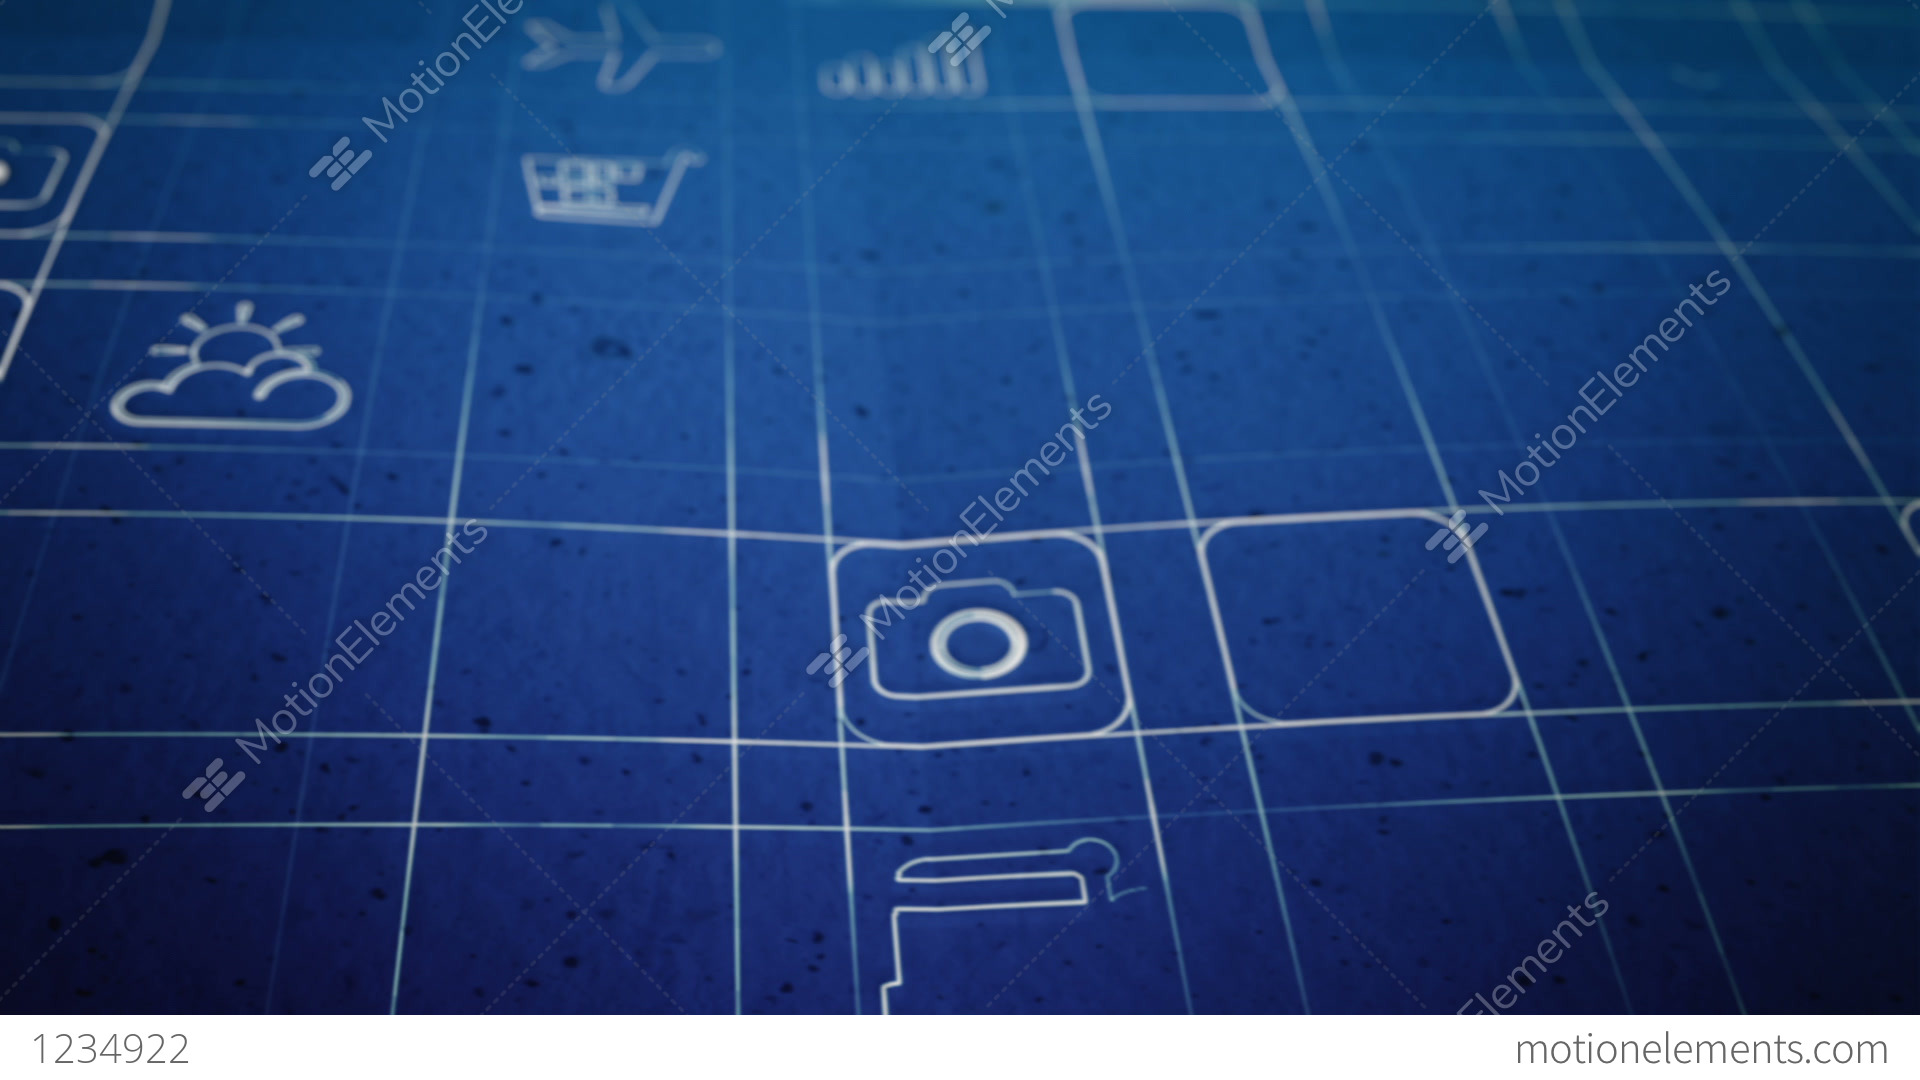 Mobile app development blueprint concept stock animation 1234922 mobile app development blueprint concept stock video footage malvernweather Image collections